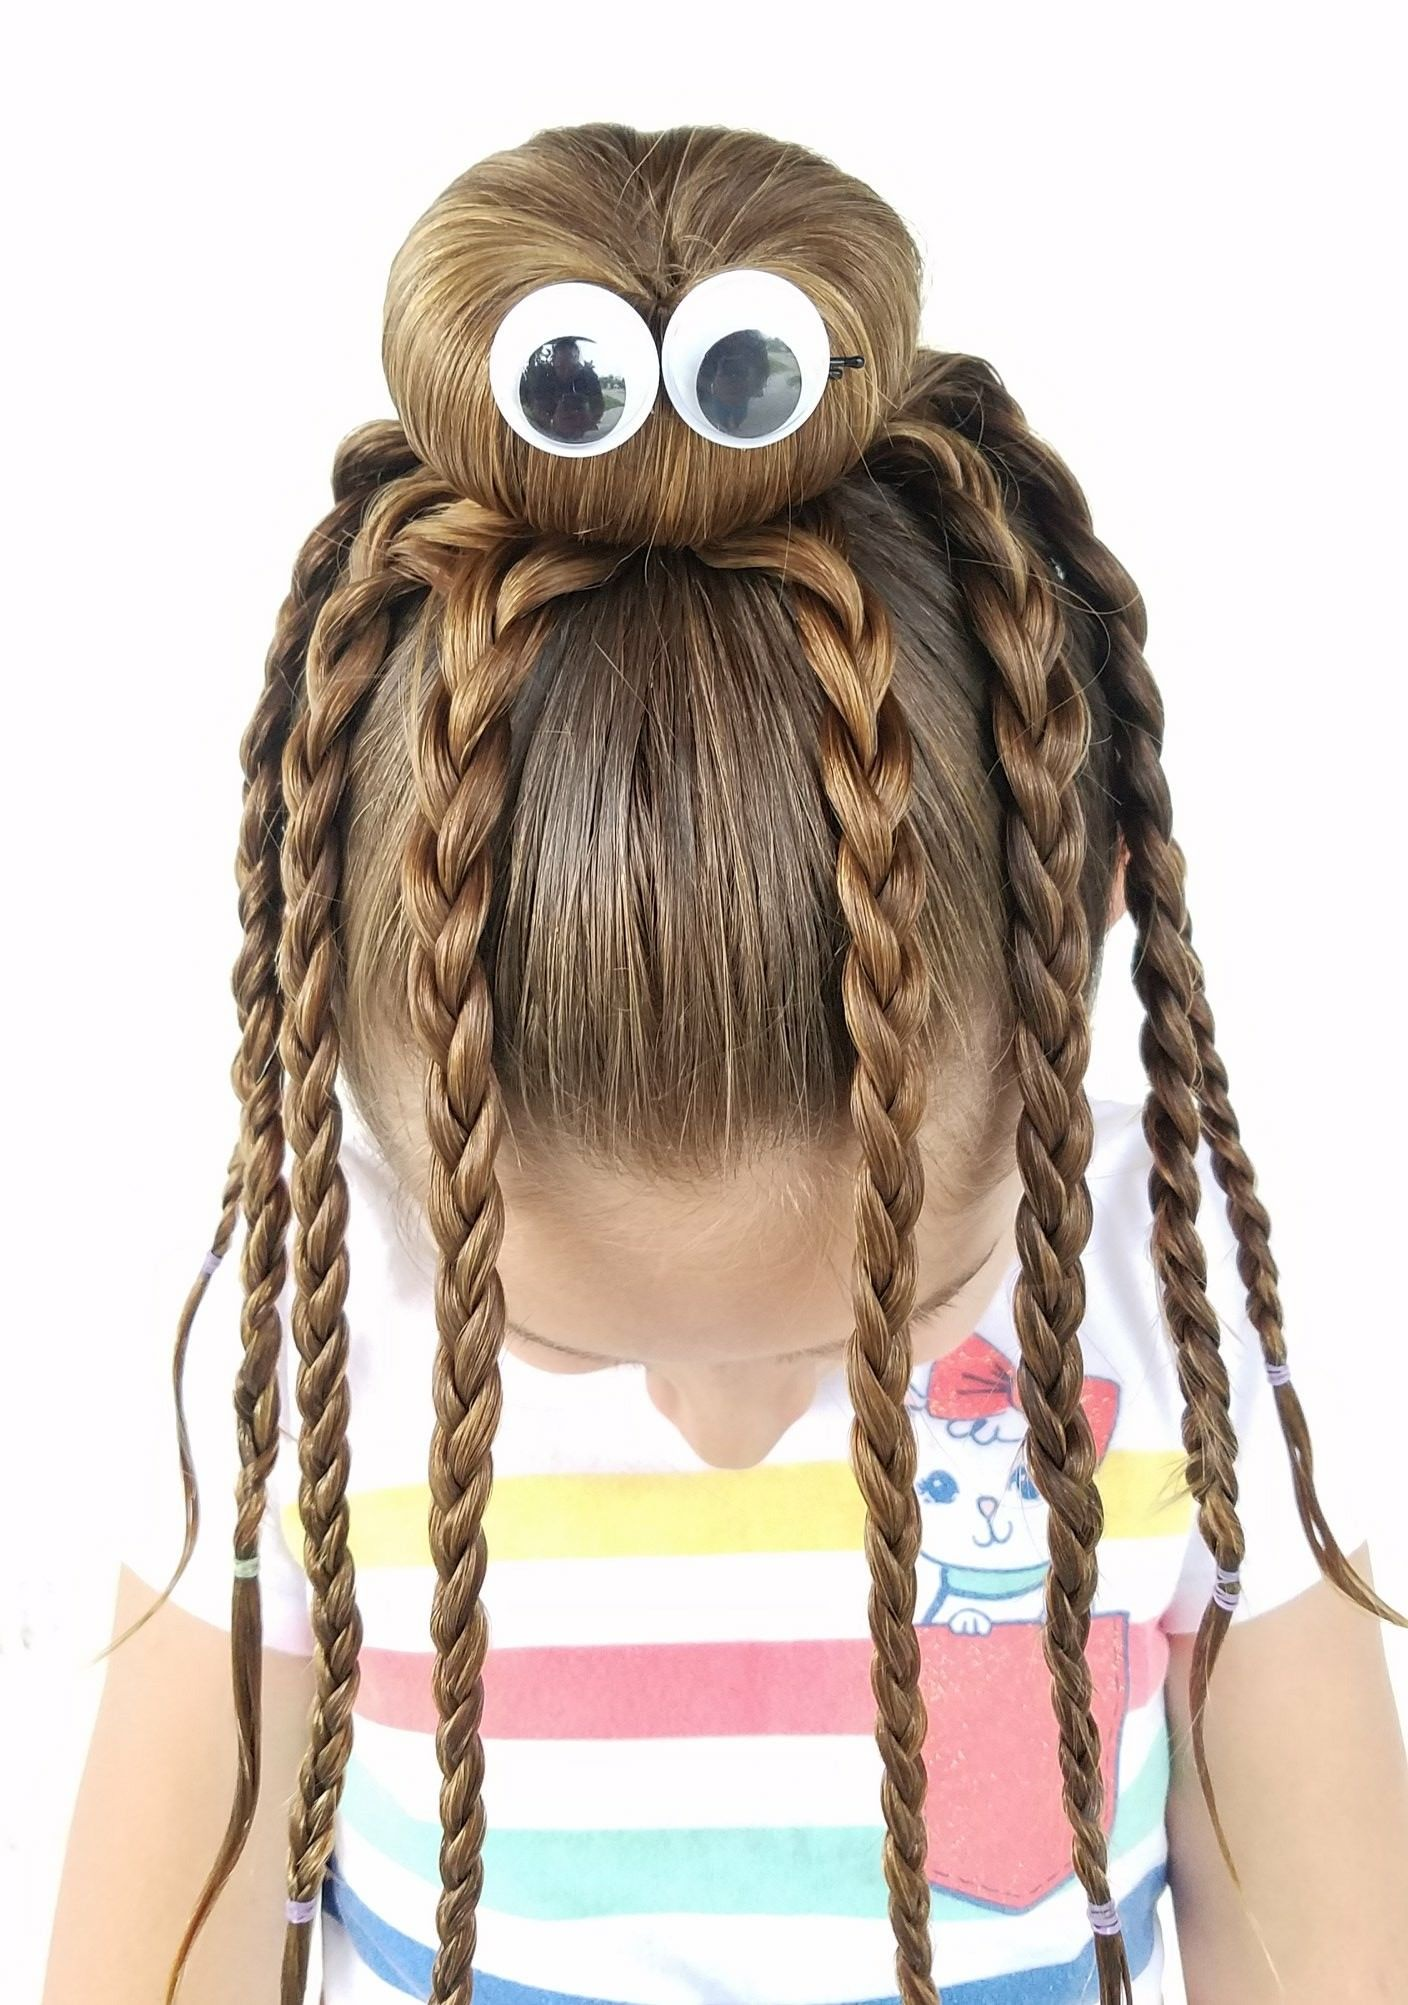 We had fun creating this octopus bun hairstyle with my daughter. With school starting up, I thought some of you could use some inspiration for crazy hair day.